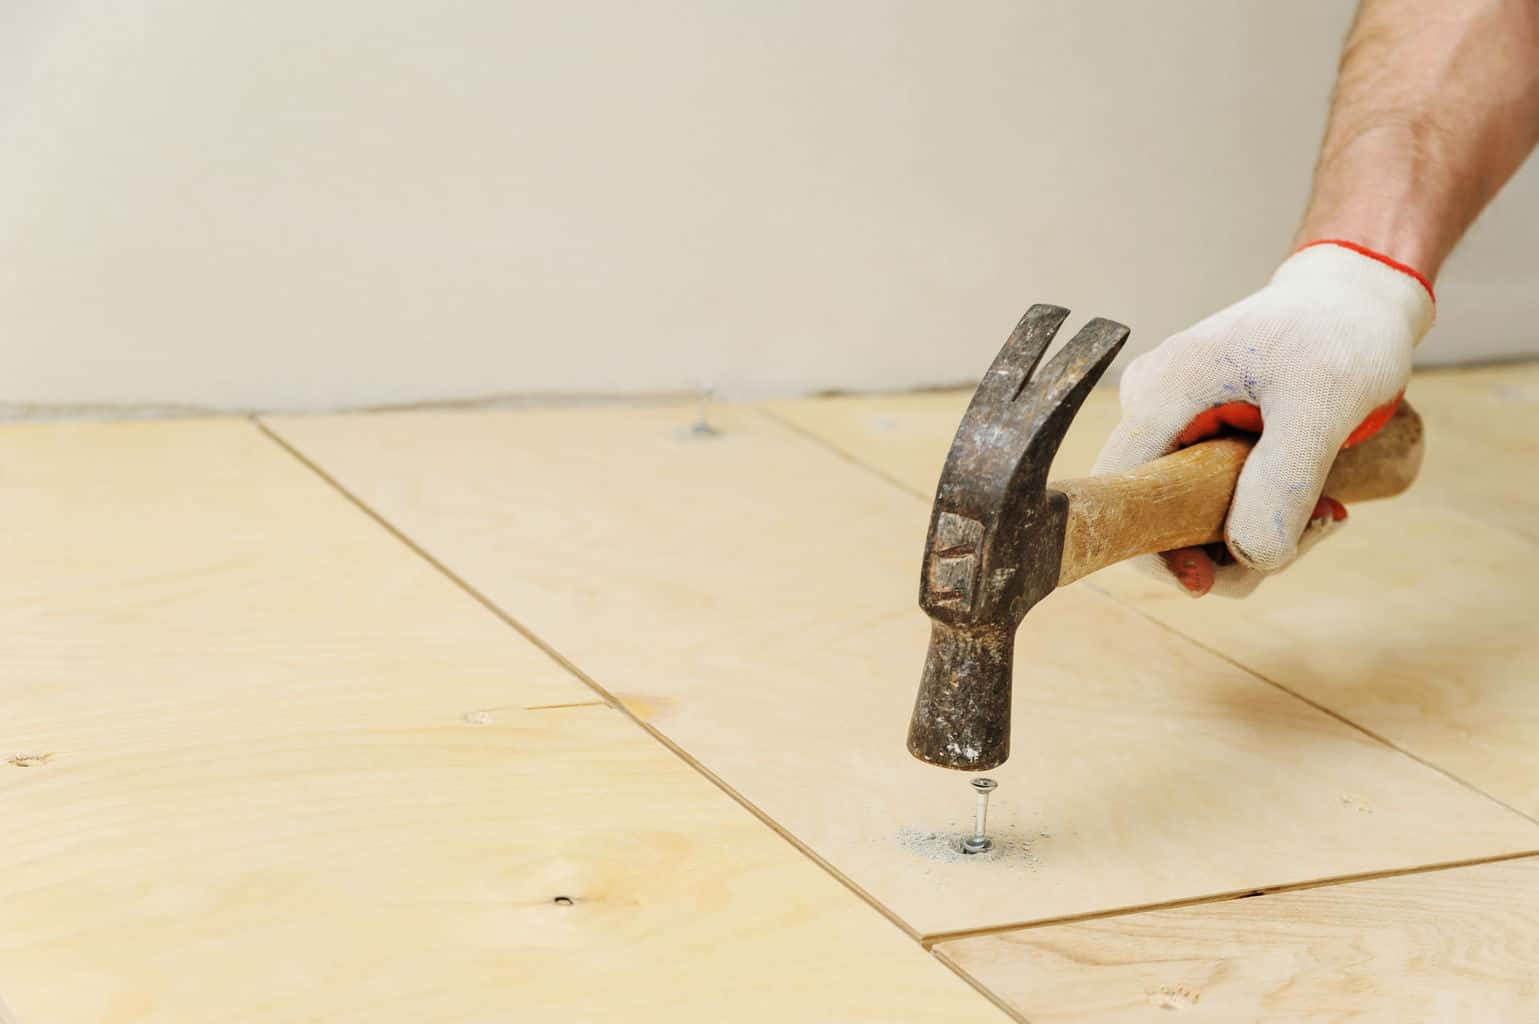 How to install carpet pad further Stair Treads together with Cast Iron Bat Floor Drain Cover together with 138333 additionally 55 No Fuss Staging Tips. on replacing a carpet pad